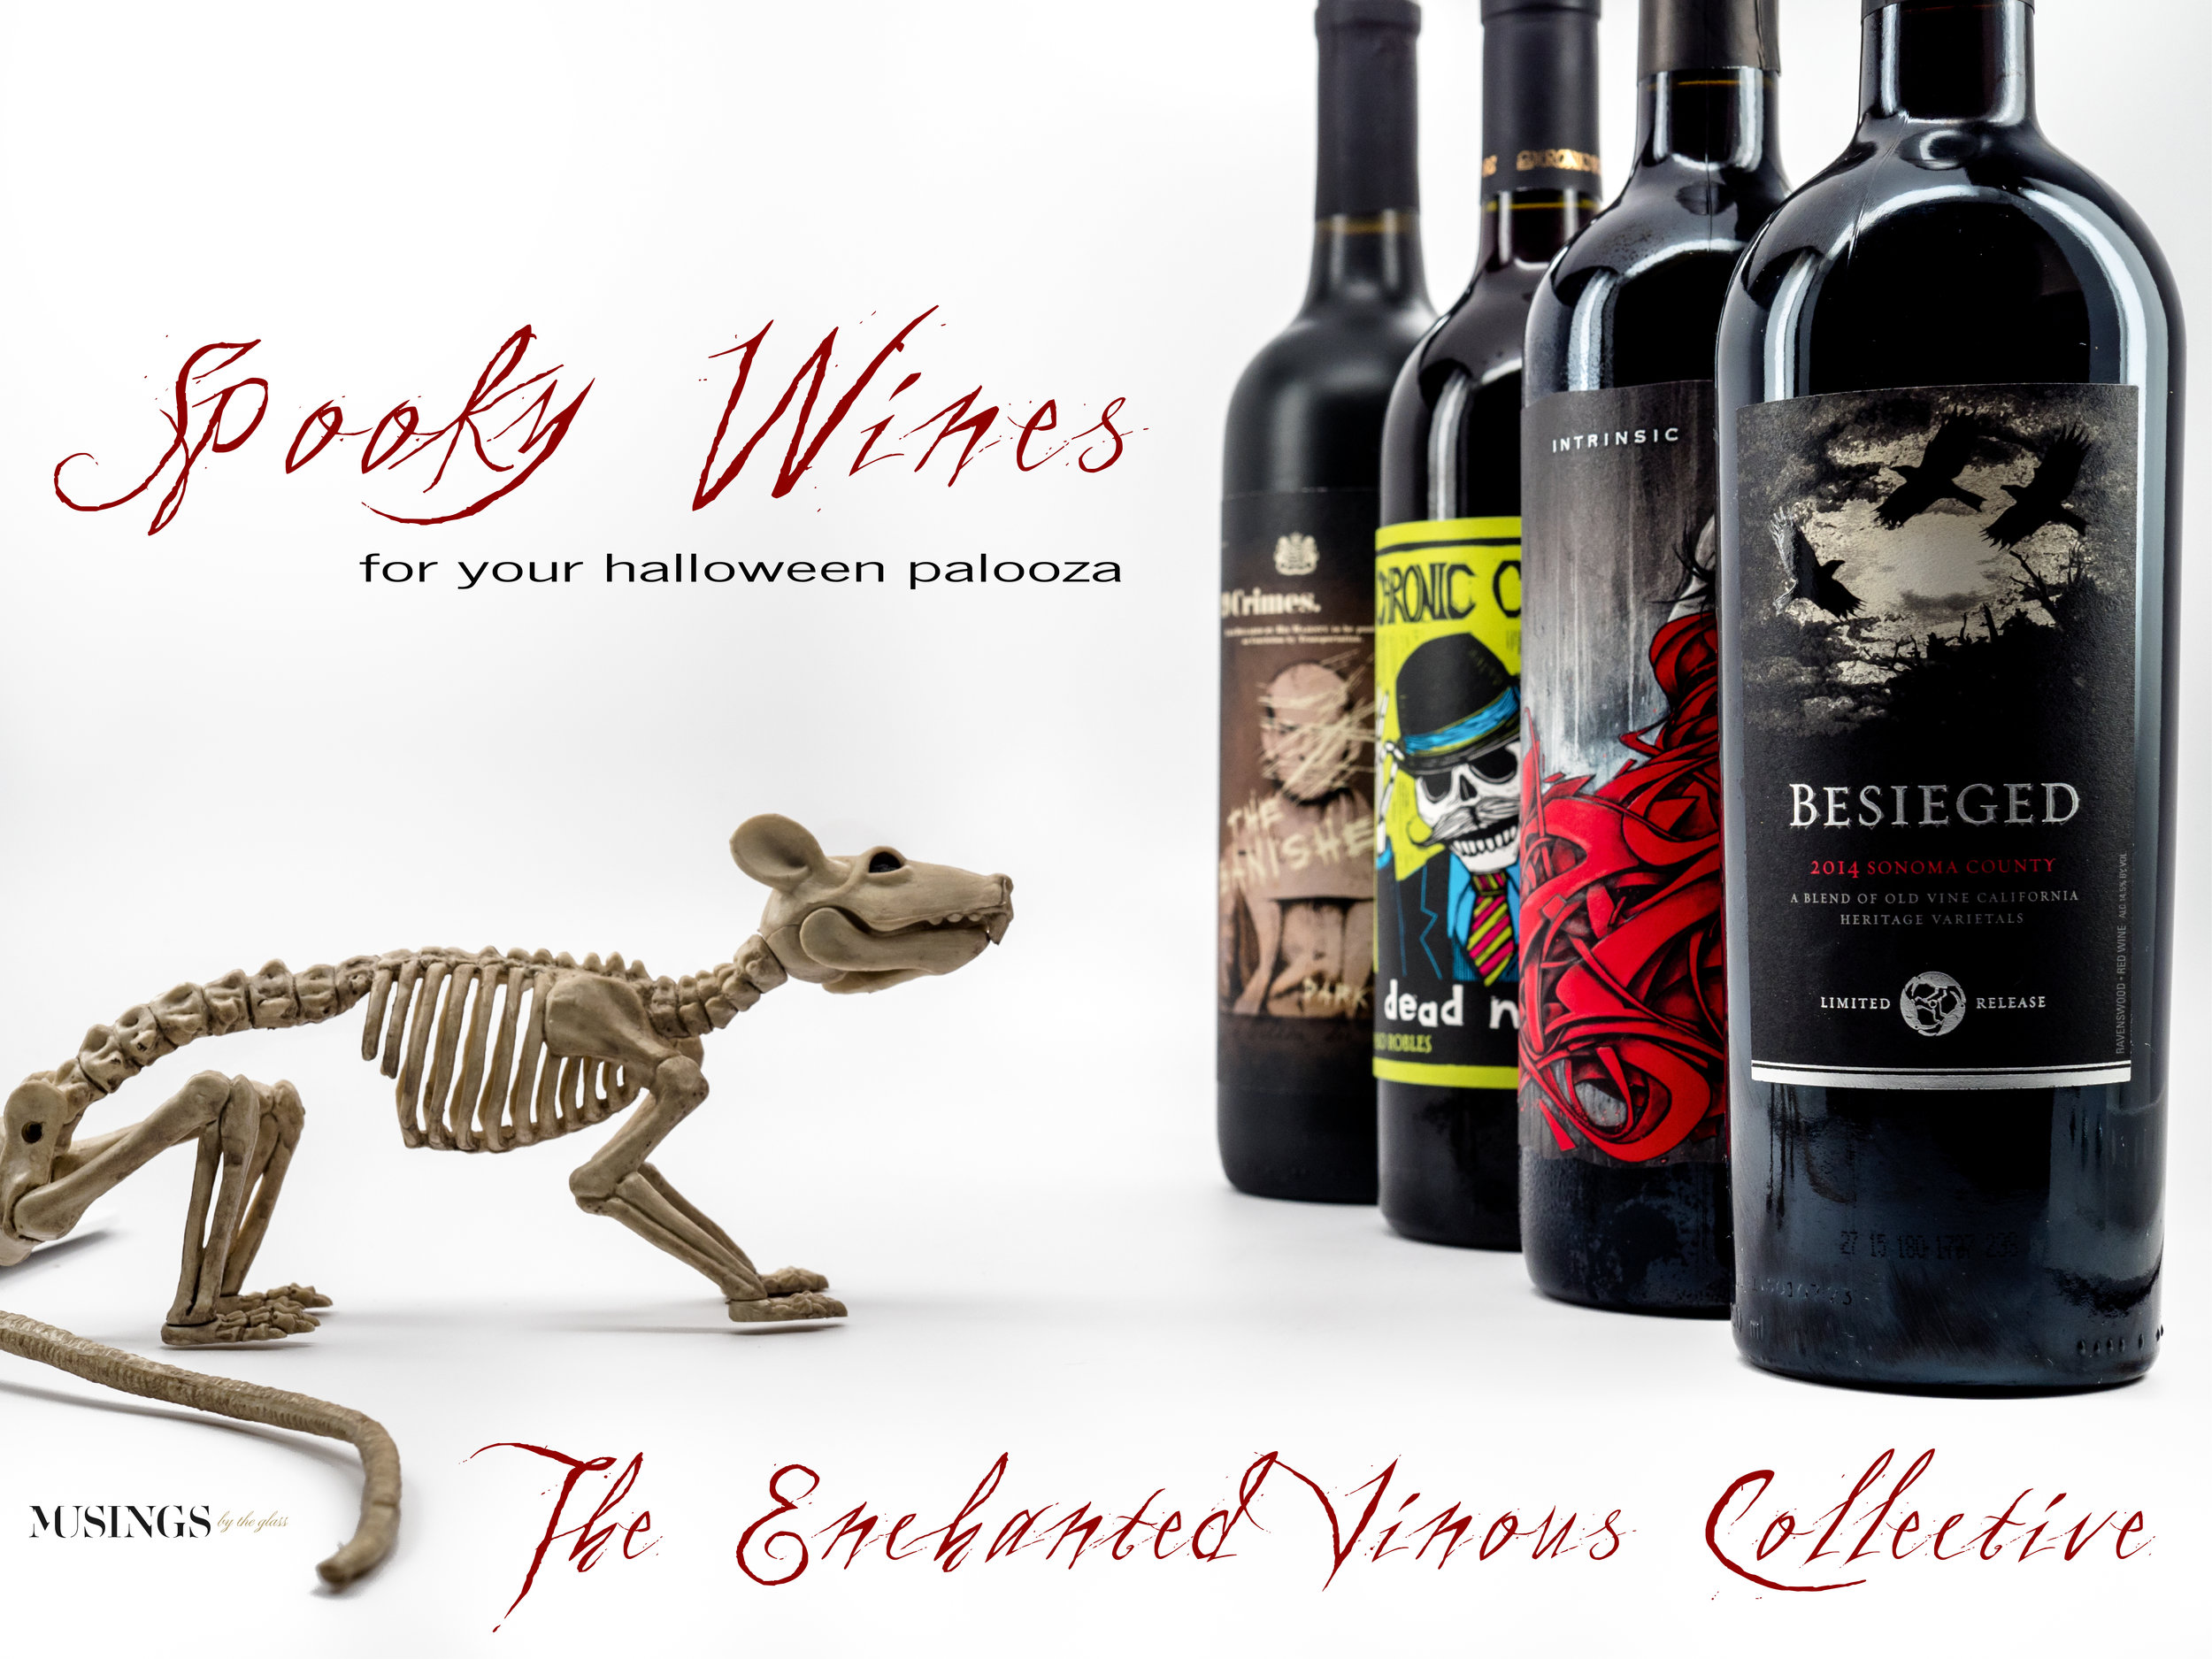 Musings by the Glass - Tips and Recommendations for Spooky Wines for your Halloween Party - Bottles with Rat Skeleton